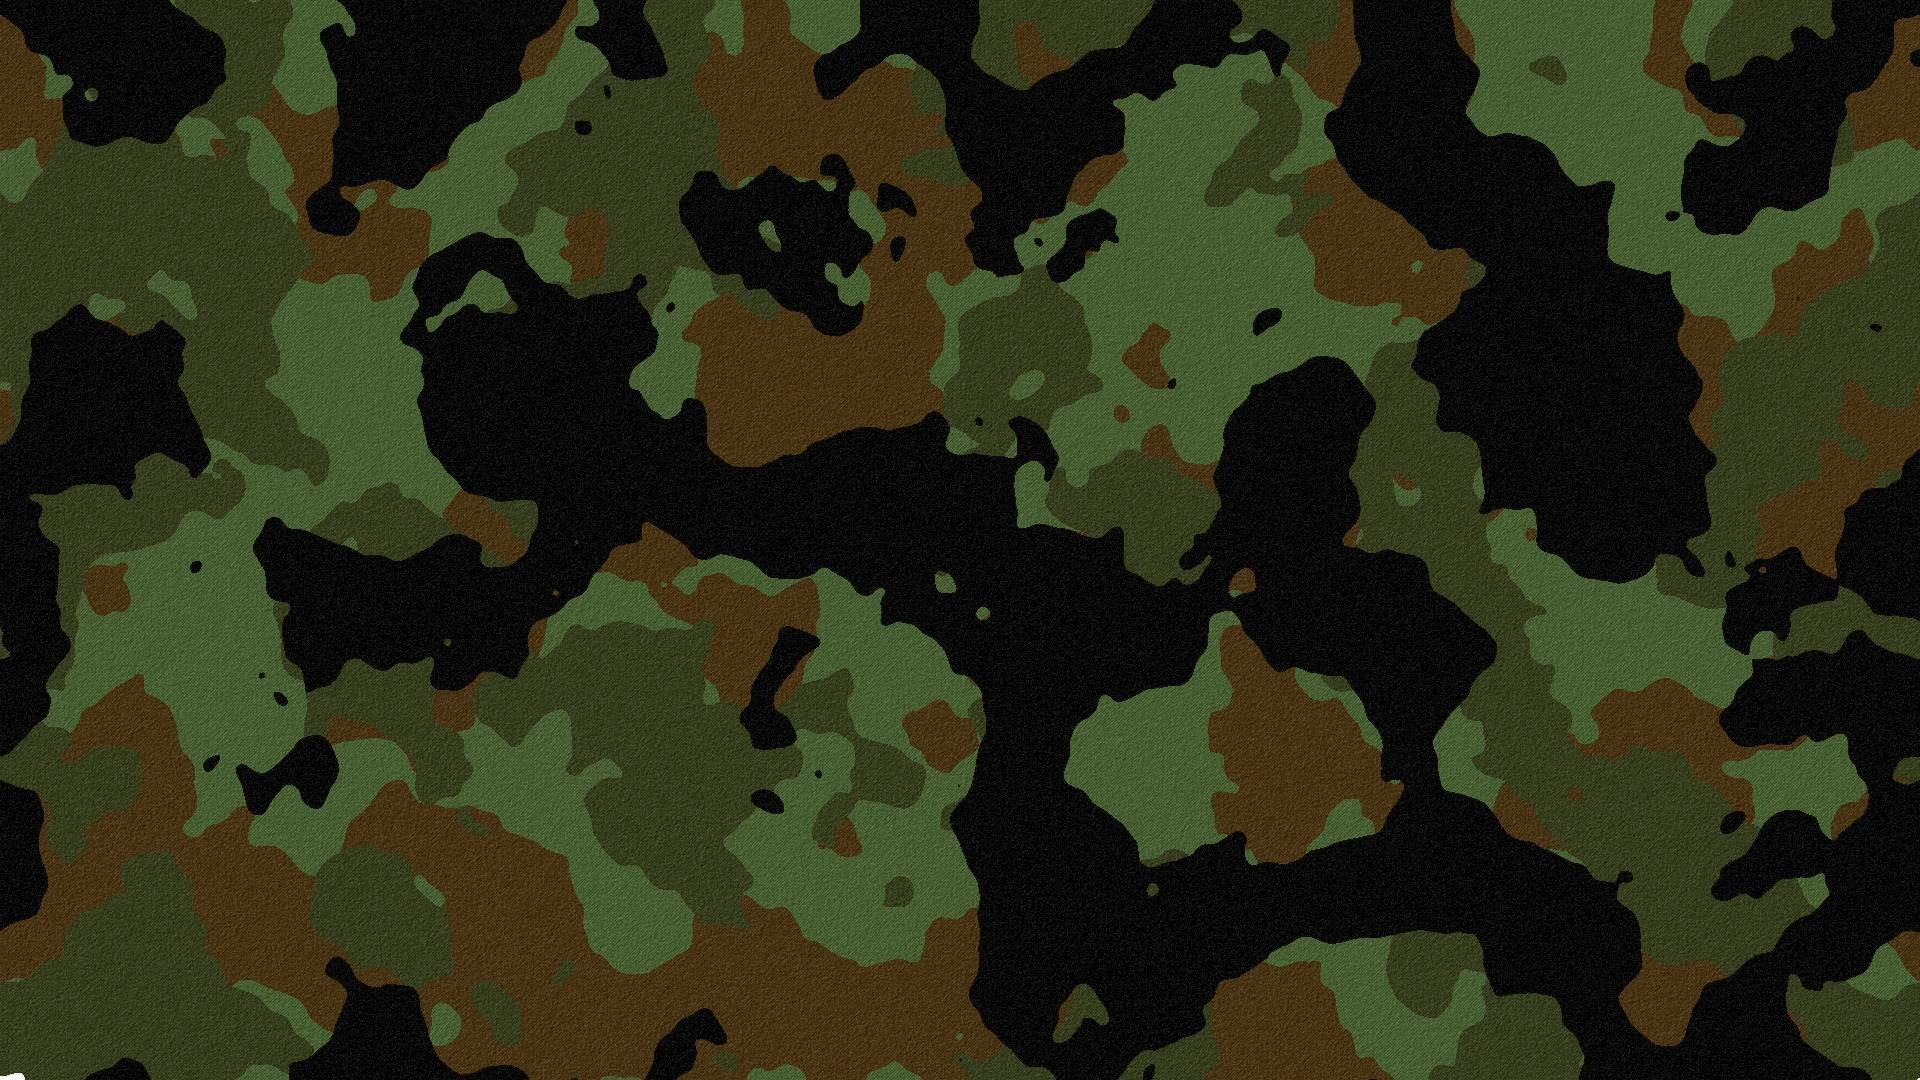 1920x1080 Camouflage Desktop Wallpapers · camouflage desktop wallpapers free  powerpoint background